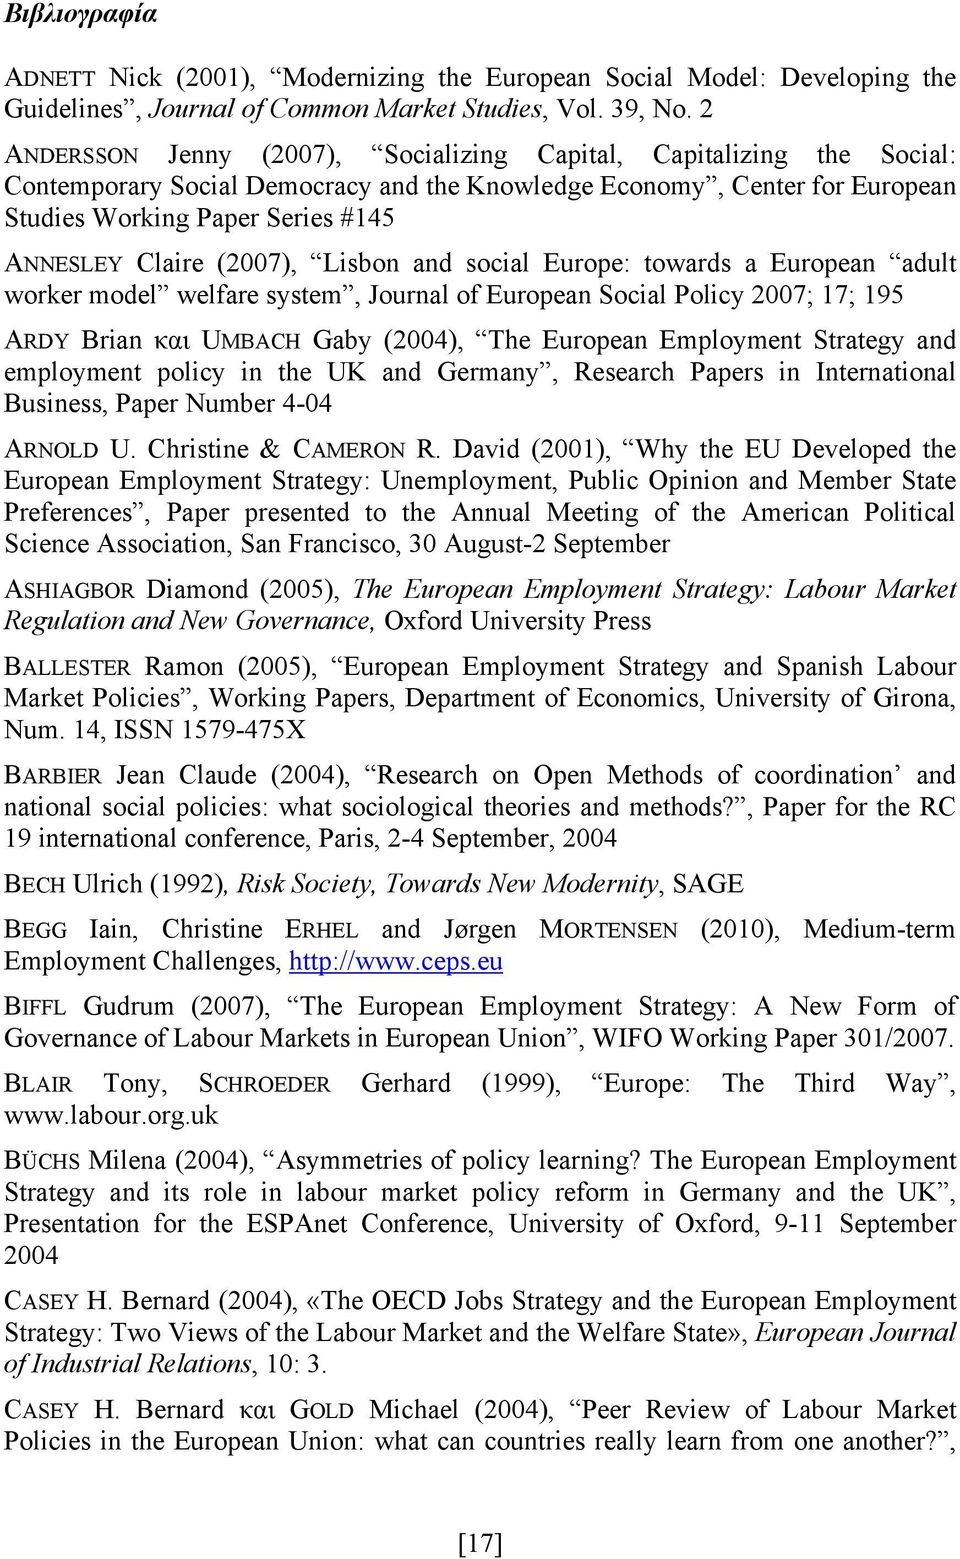 (2007), Lisbon and social Europe: towards a European adult worker model welfare system, Journal of European Social Policy 2007; 17; 195 ARDY Brian και UMBACH Gaby (2004), The European Employment